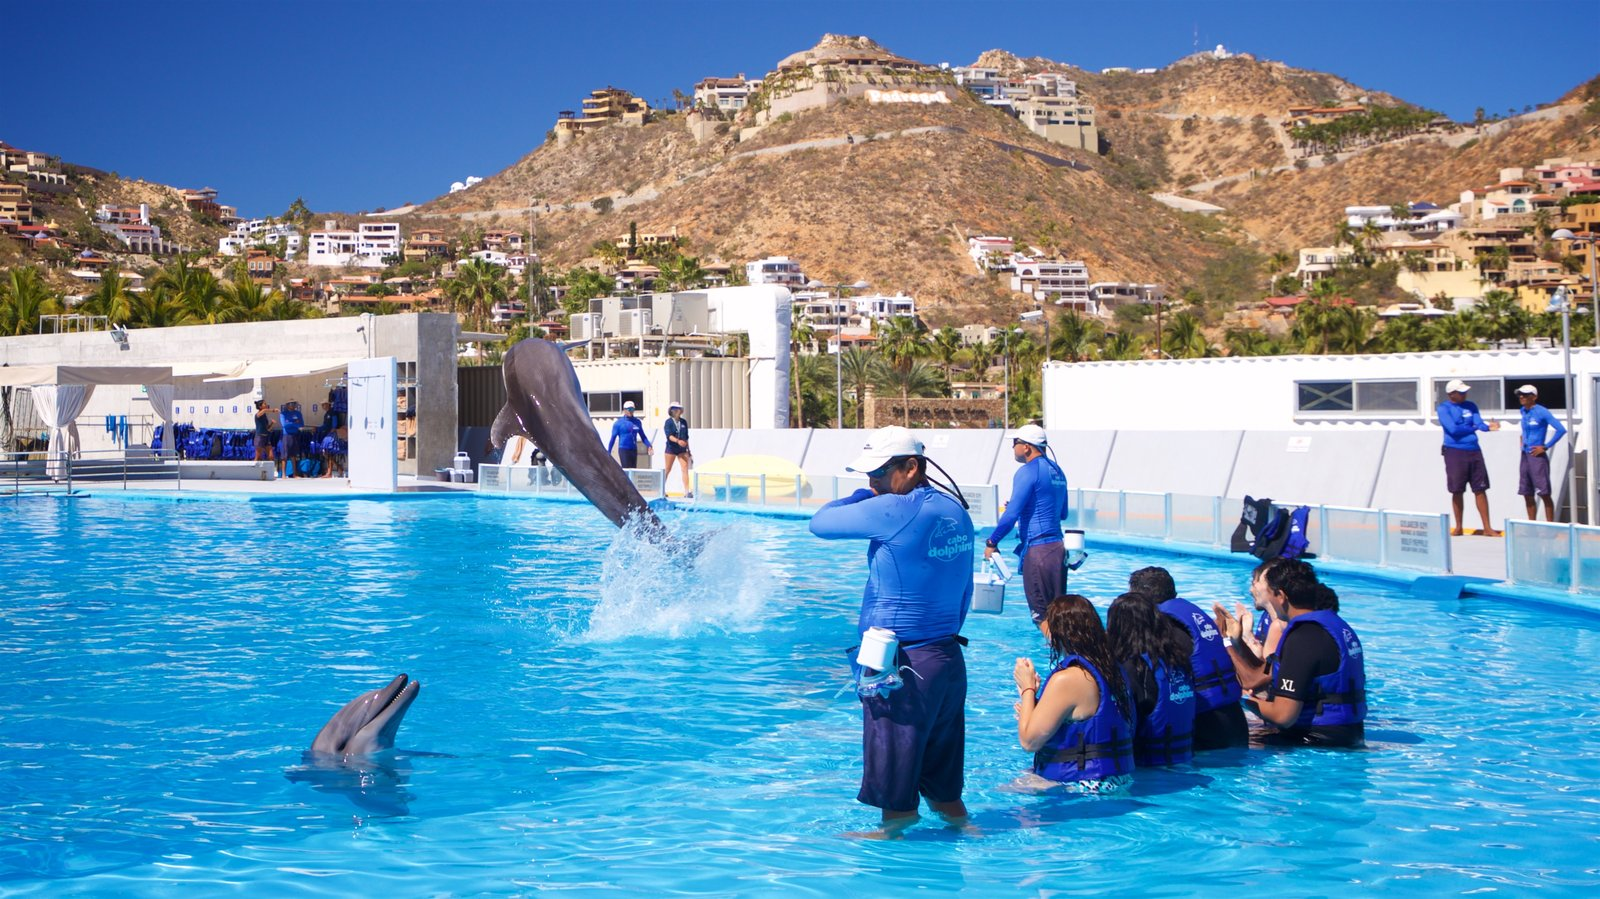 Cabo Dolphins which includes a pool and marine life as well as a small group of people